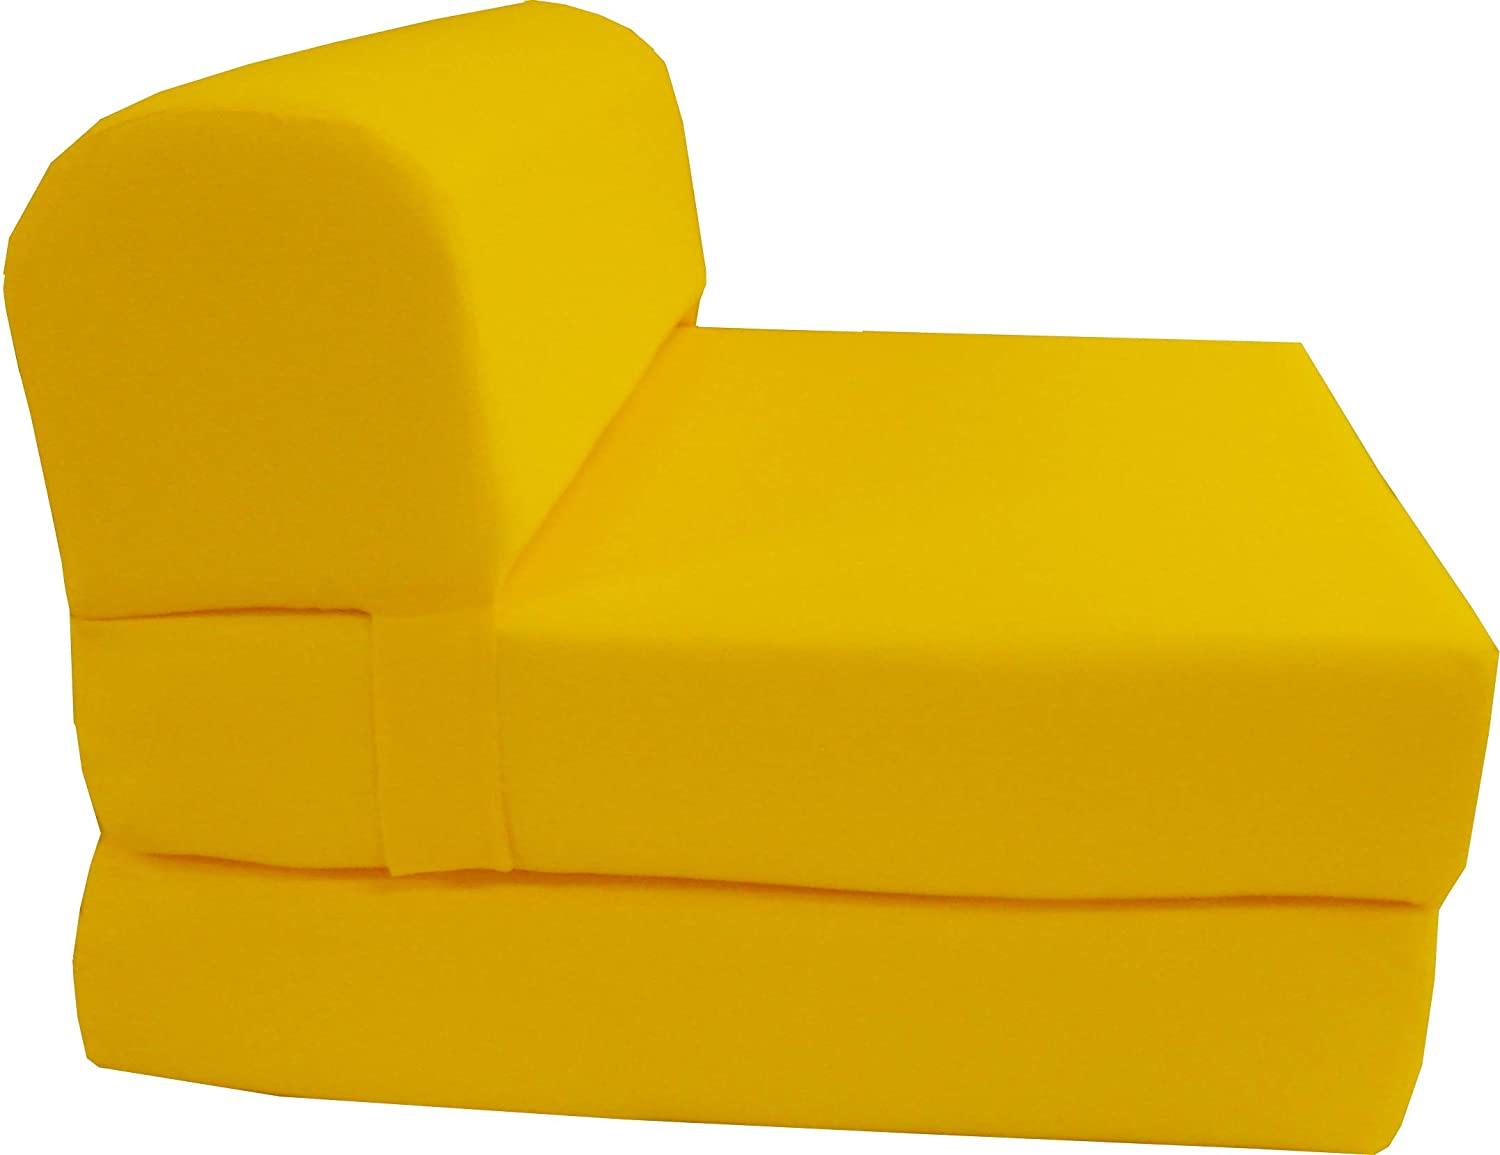 Amazing Dd Futon Furniture Yellow Sleeper Chair Folding Foam Beds Sofa Bed 6 X 32 X 70 1 8 Lb Density Foam Onthecornerstone Fun Painted Chair Ideas Images Onthecornerstoneorg